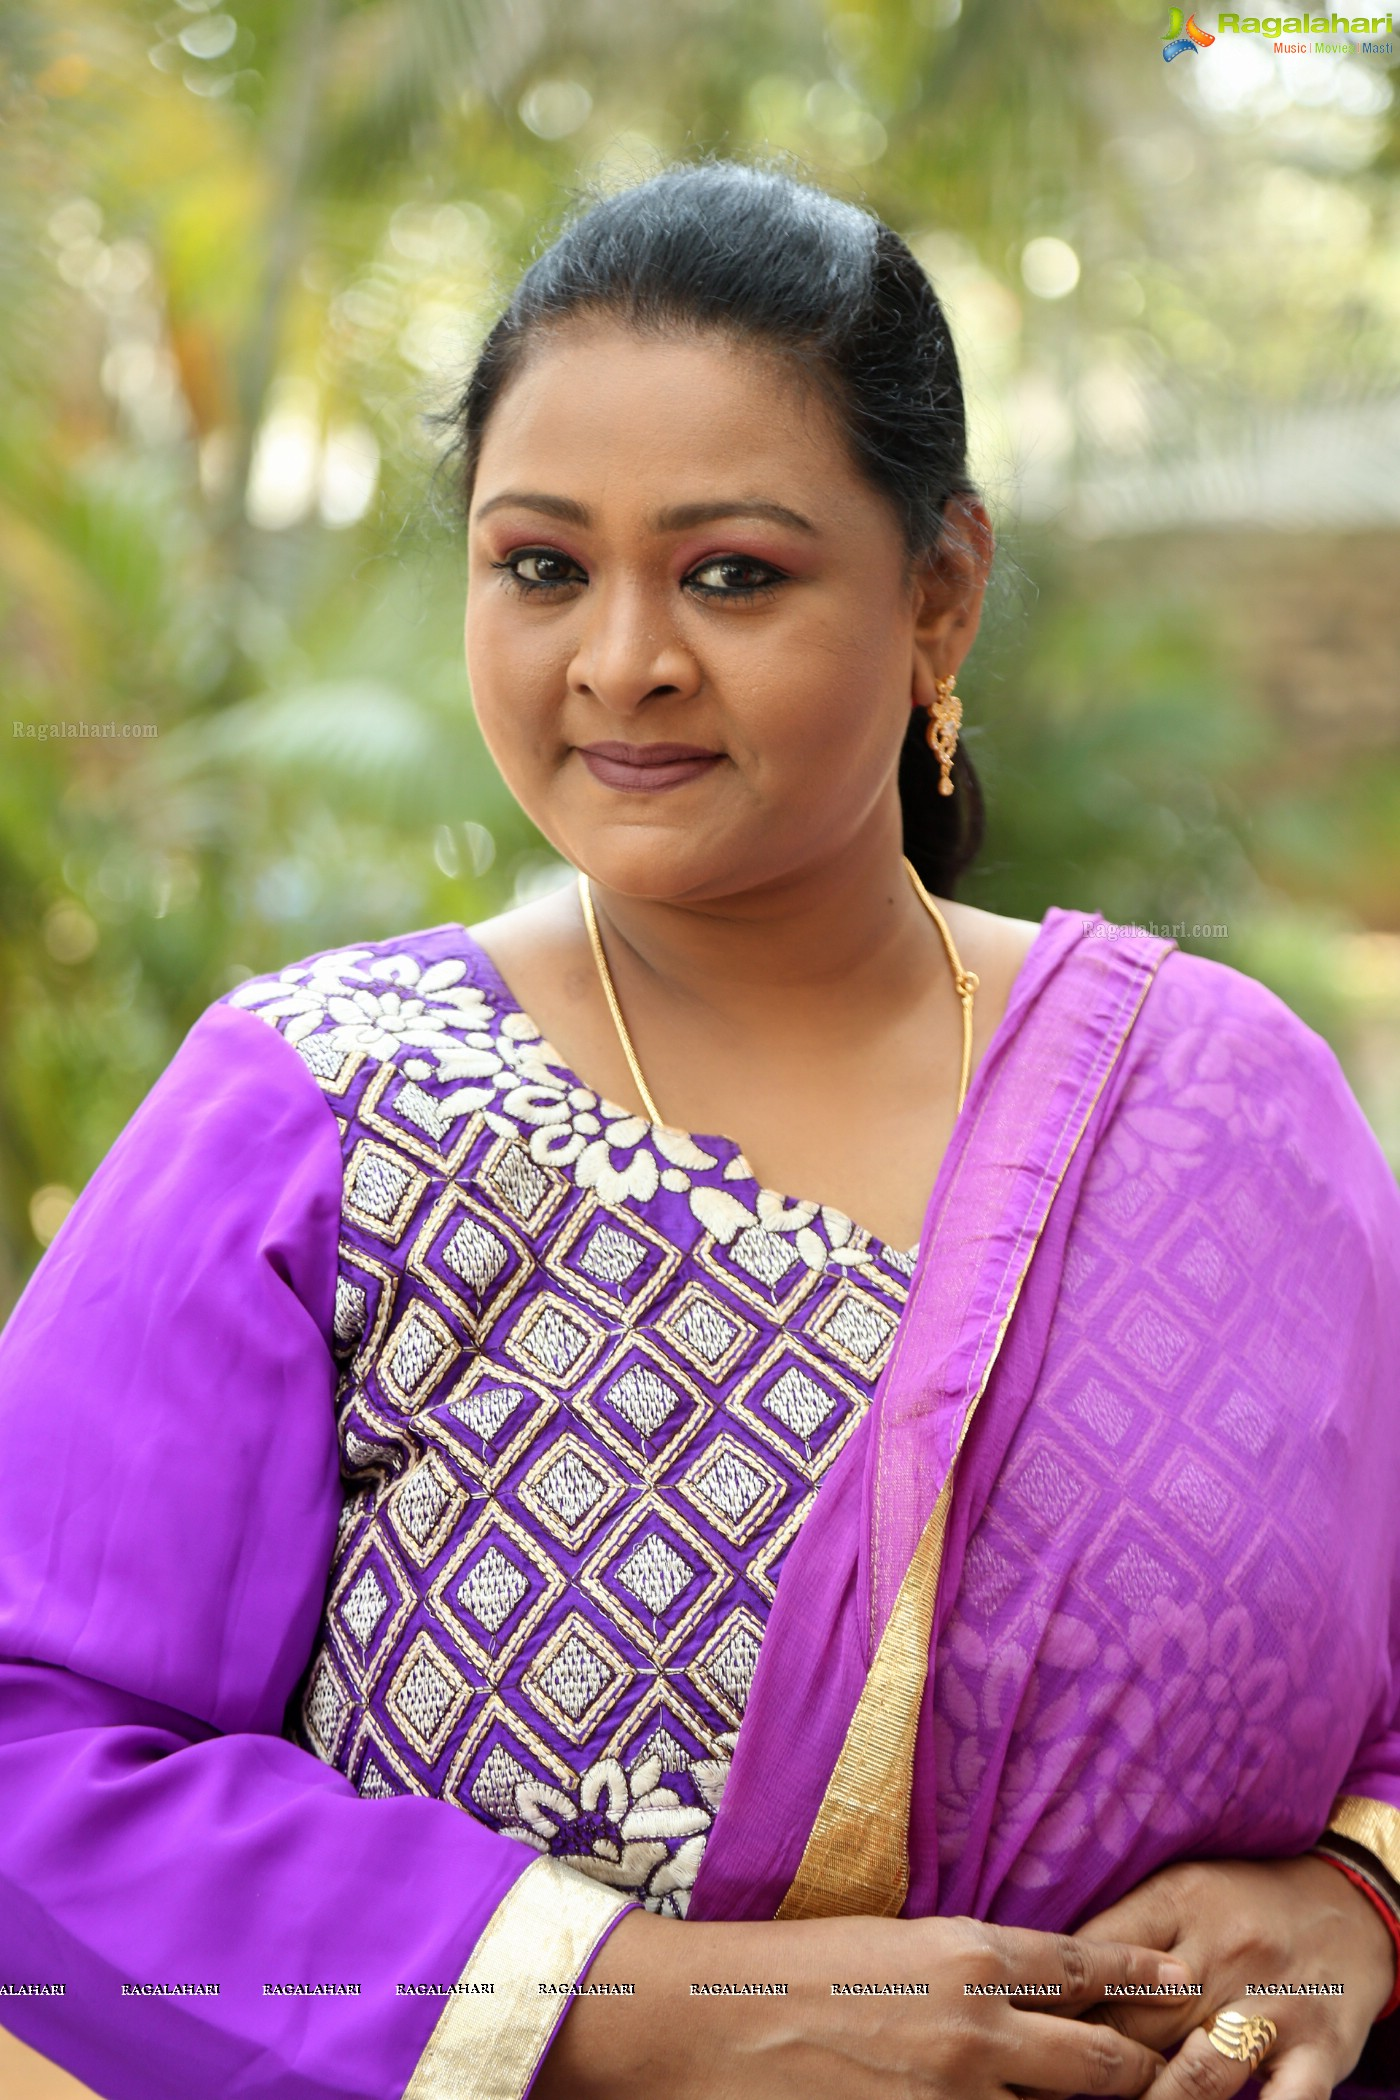 Shakeela At Seelavathi Teaser Launch Posters